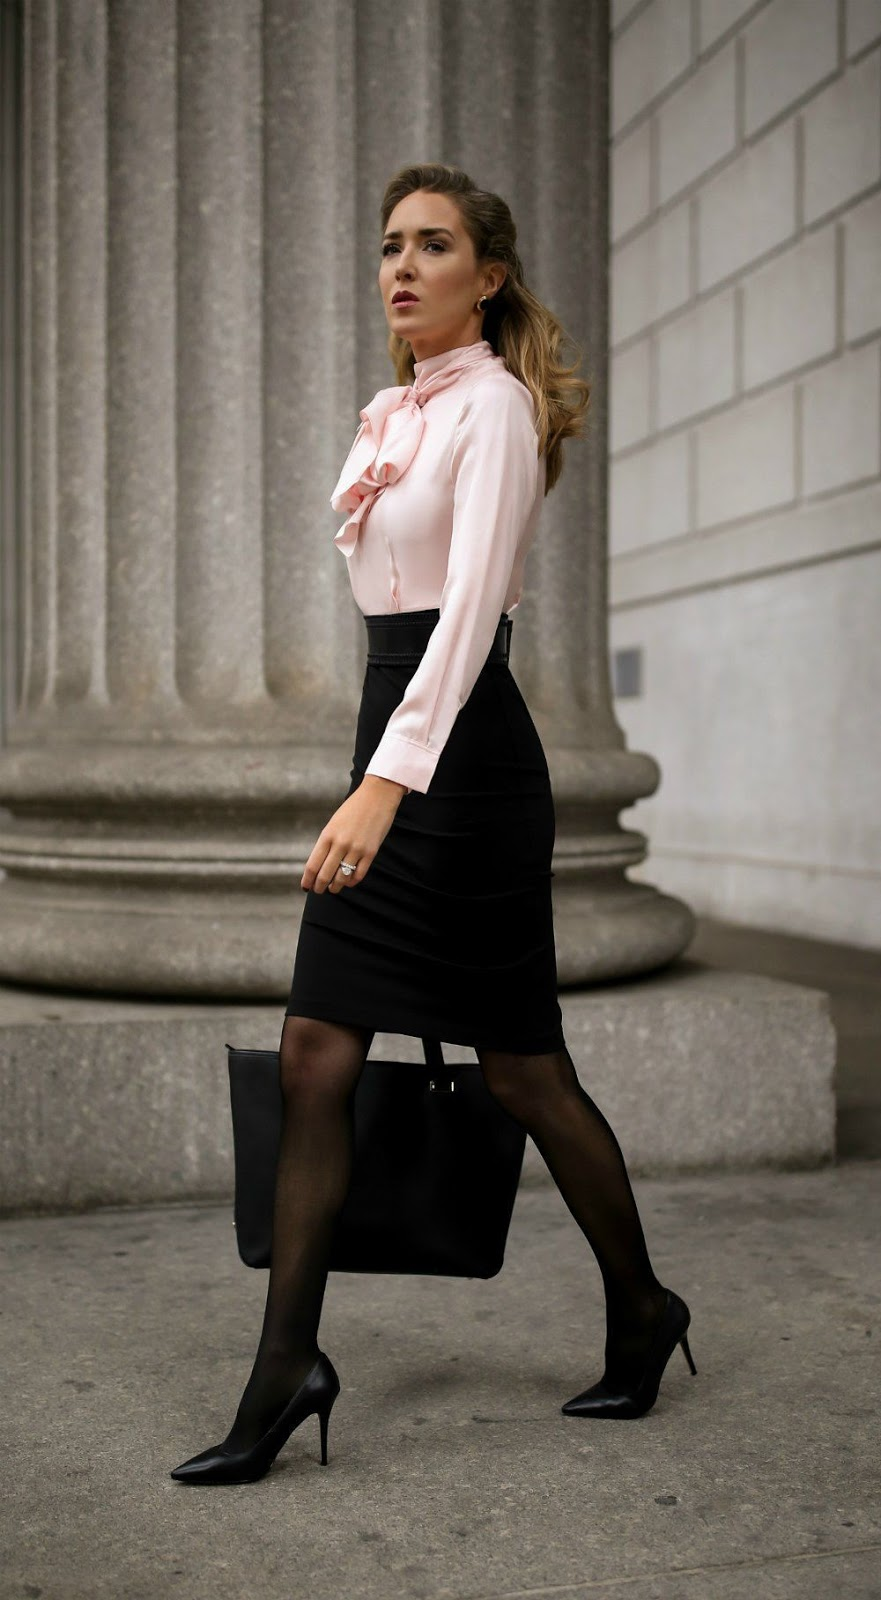 Should You Wear Tights To Job Interviews Or Work Fashionmylegs The Tights And Hosiery Blog